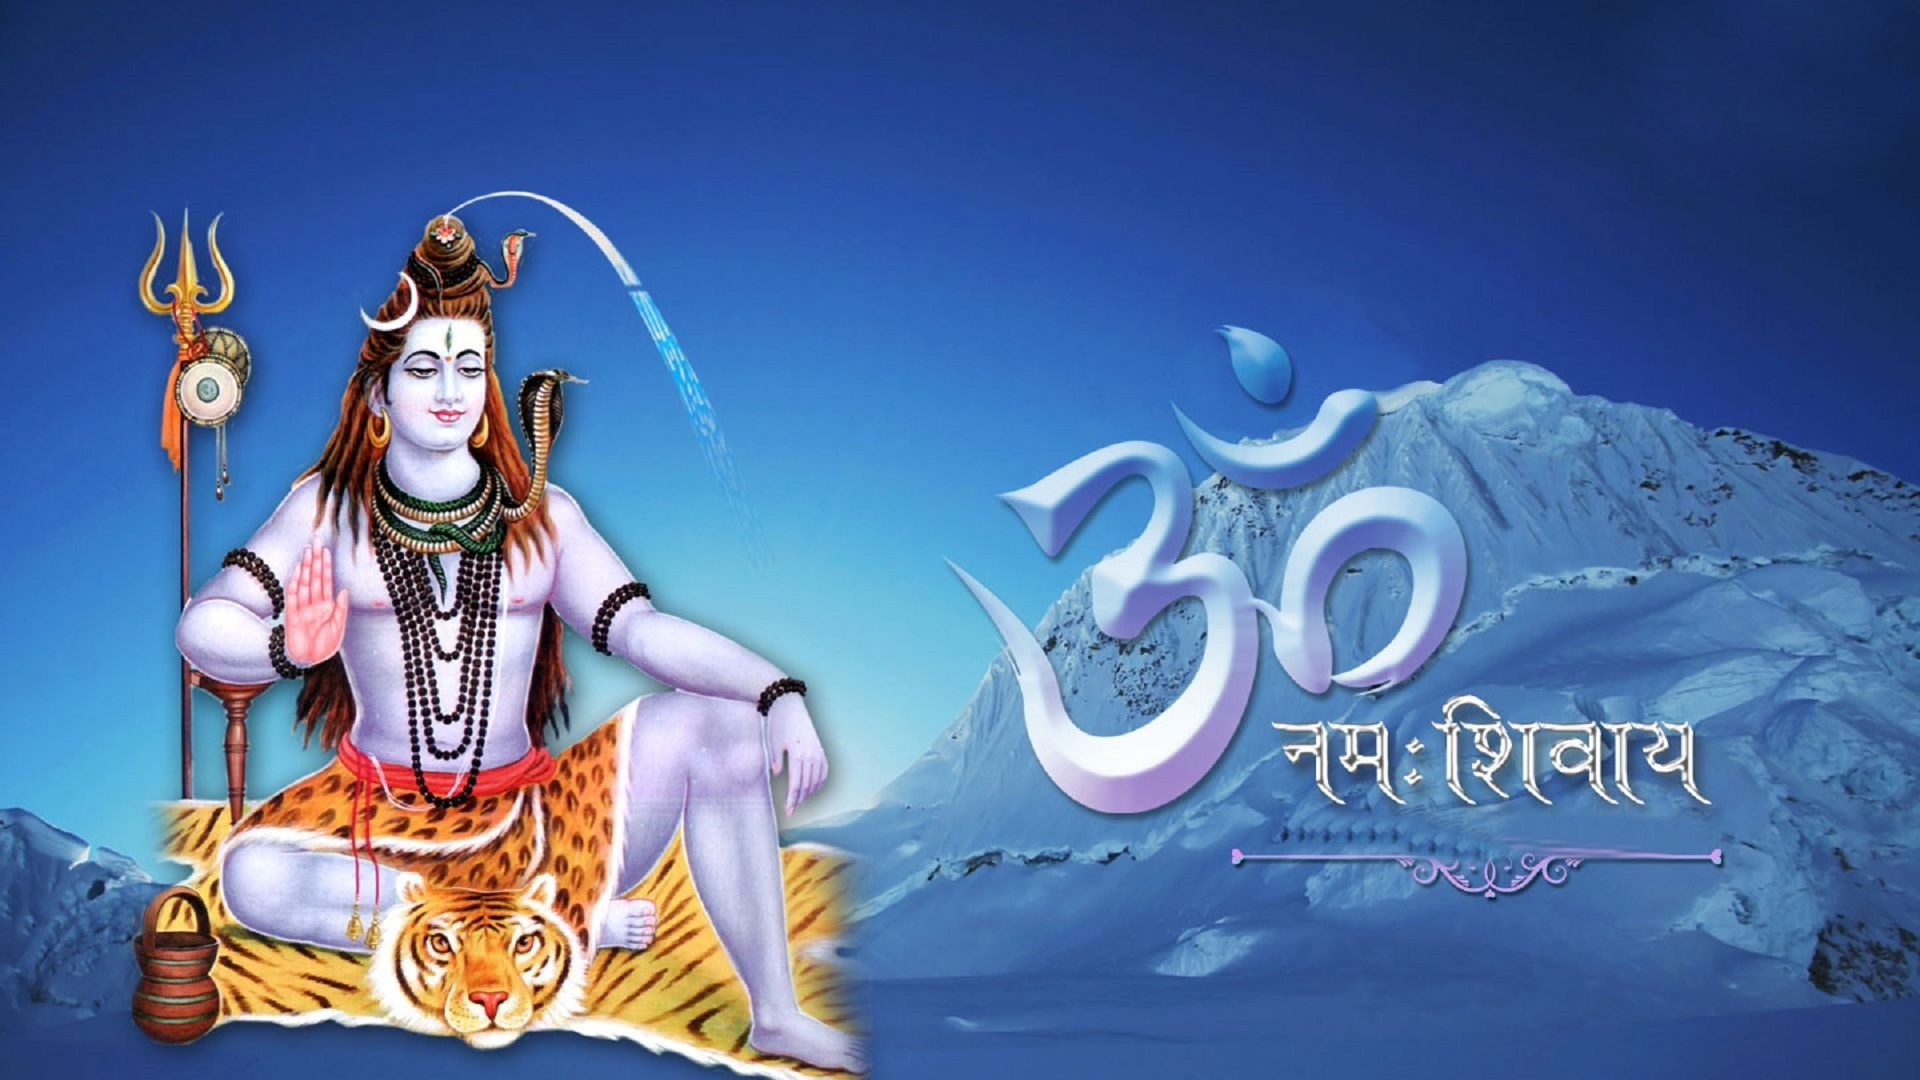 1920x1080 Lord Shiva Images For Whatsapp Dp